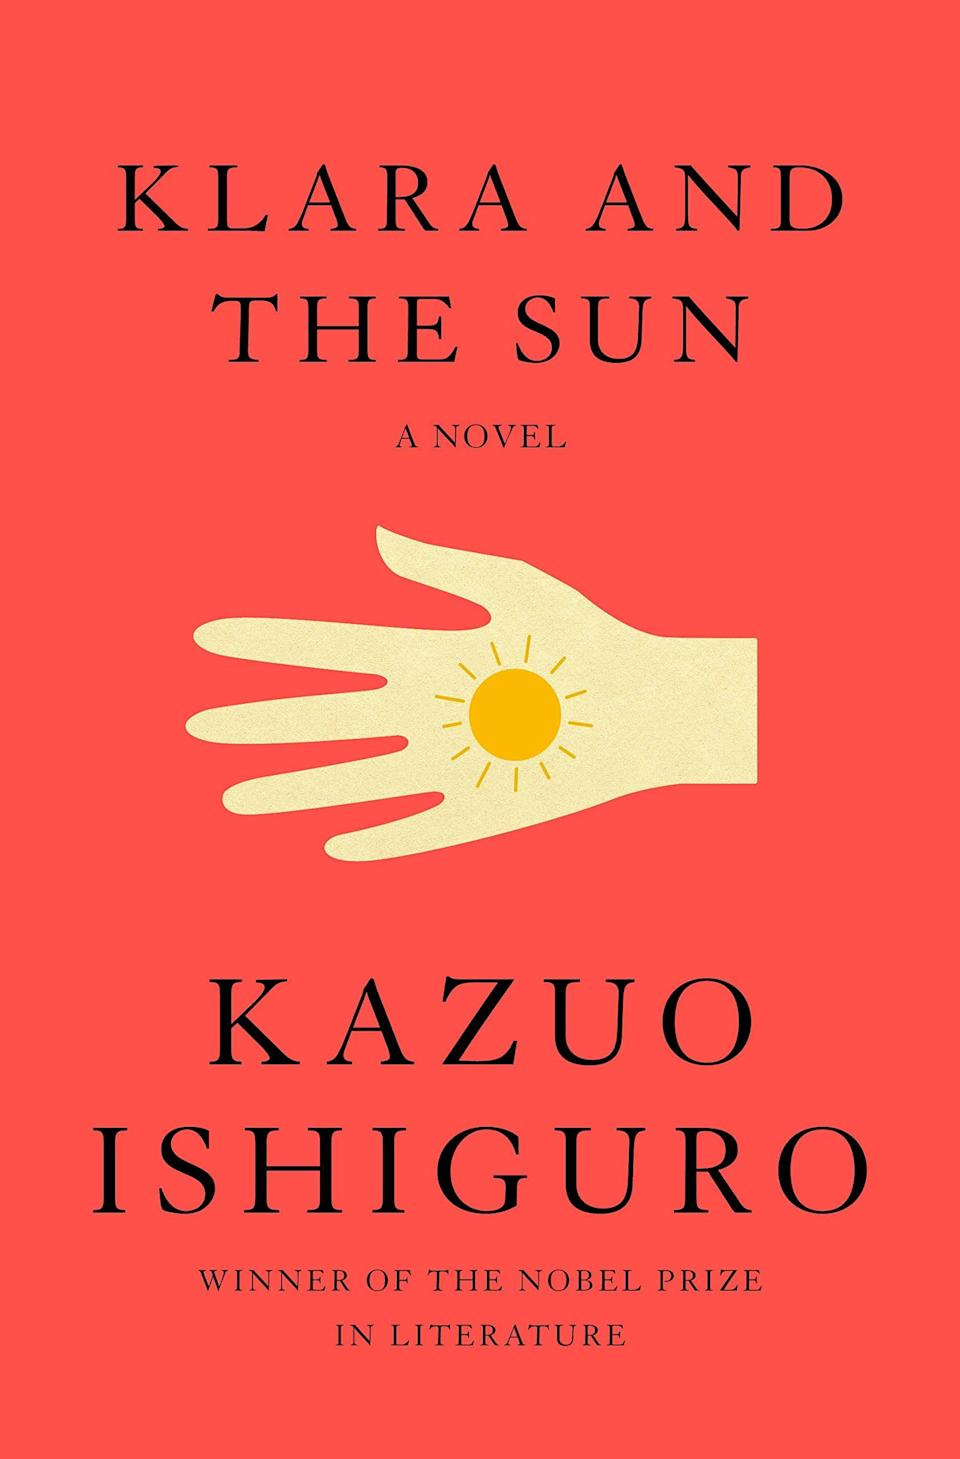 <p>Kazuo Ishiguro, the author of <strong>Never Let Me Go</strong>, returns with <span><strong>Klara and the Sun</strong></span>, a beautiful and empathetic novel told from the viewpoint of an Artificial Friend named Klara. From her place in a shop window, Klara observes the people who come into the store and those who walk by it every day as she waits patiently for someone to take her home. </p> <p><em>Out March 2</em></p>